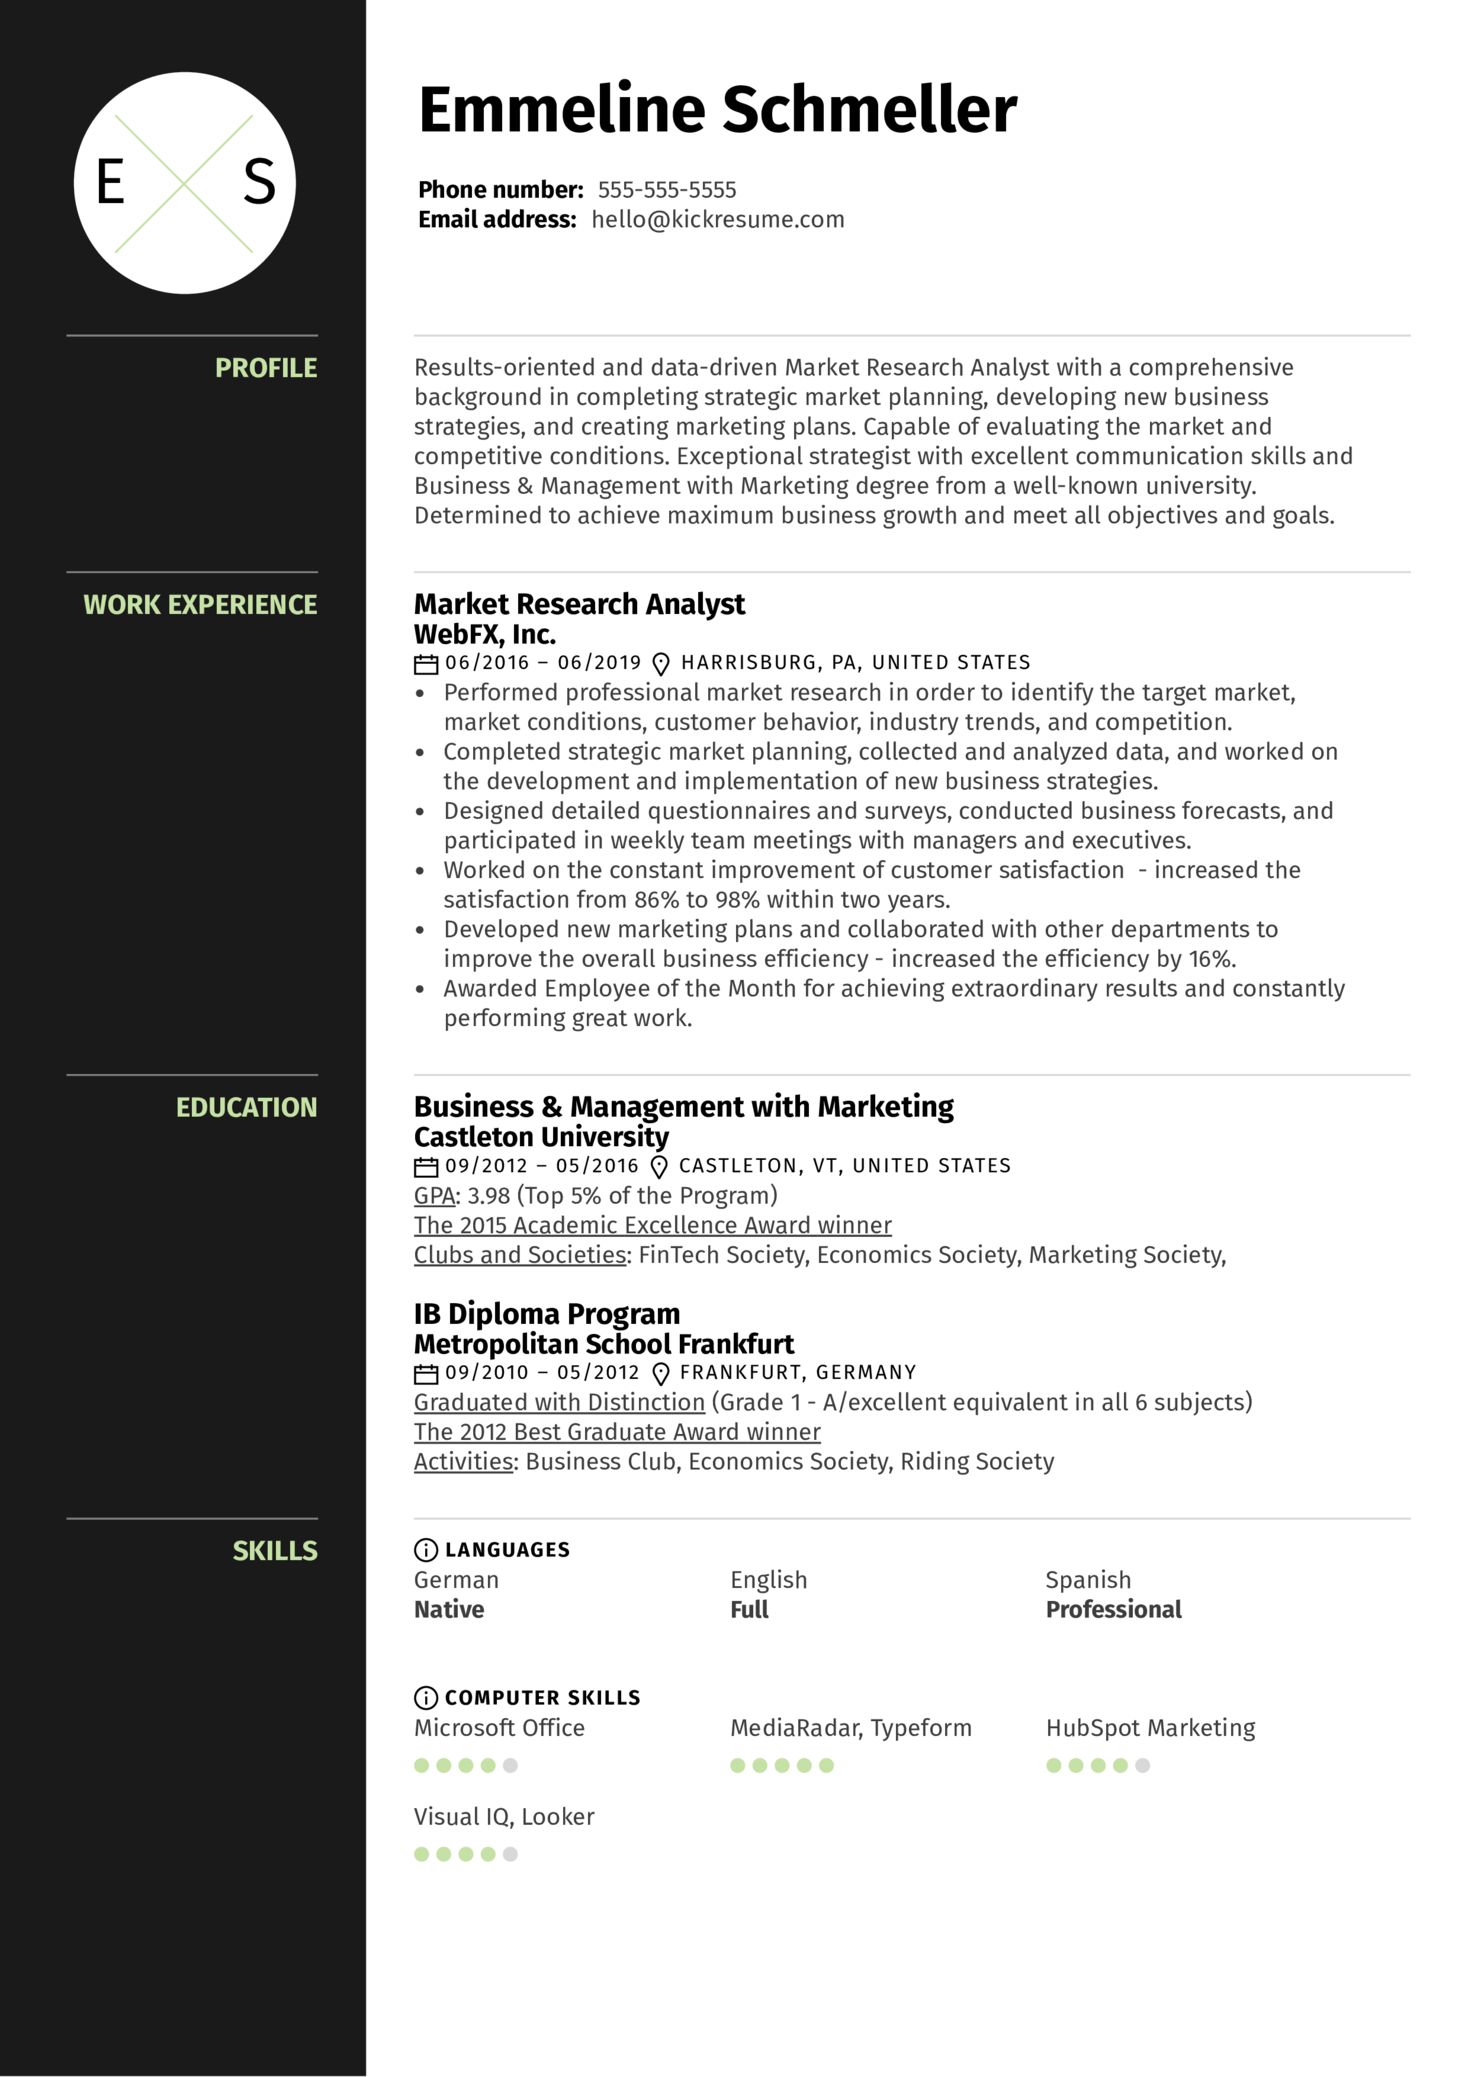 Market Research Analyst Resume Example (parte 1)